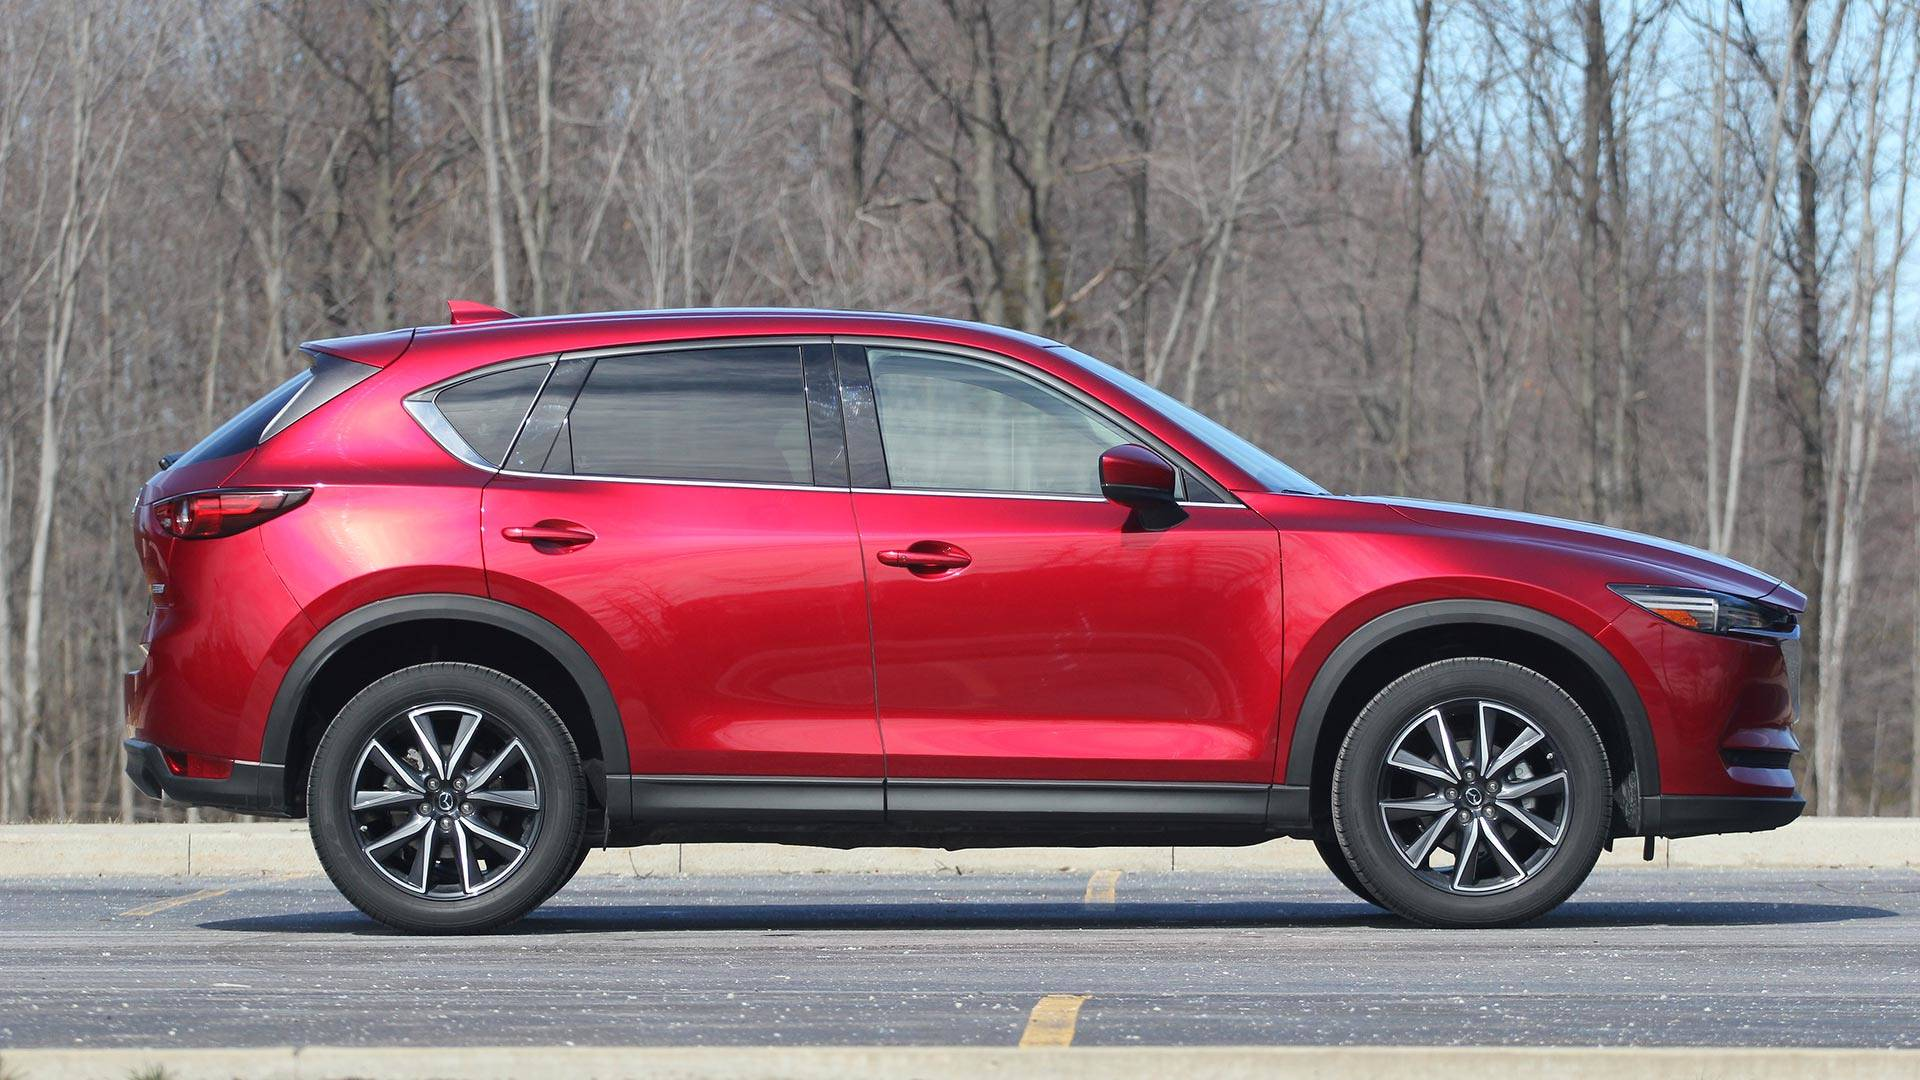 2018 Mazda Cx 5 Review Trailing Its Own Triumph